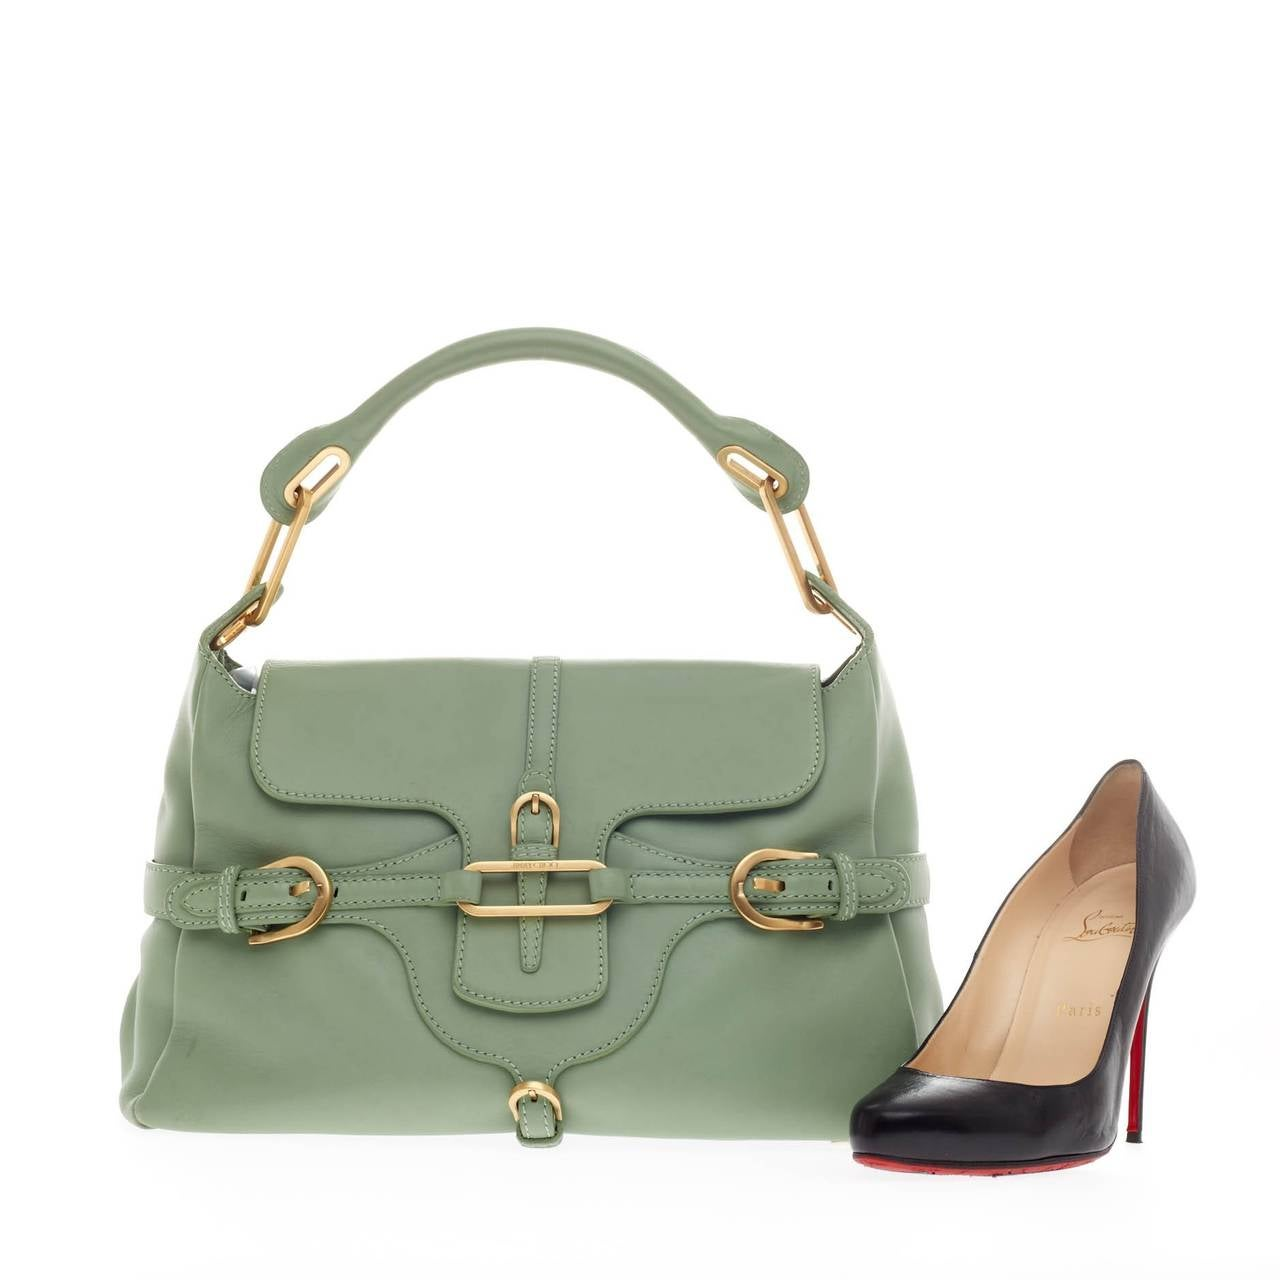 This authentic Jimmy Choo Tulita Shoulder Bag Leather is a stylish hobo perfect for a modern woman. Crafted from beautiful mint green smooth leather, this understated bag features a single rolled top handle, buckle strap details, protective base